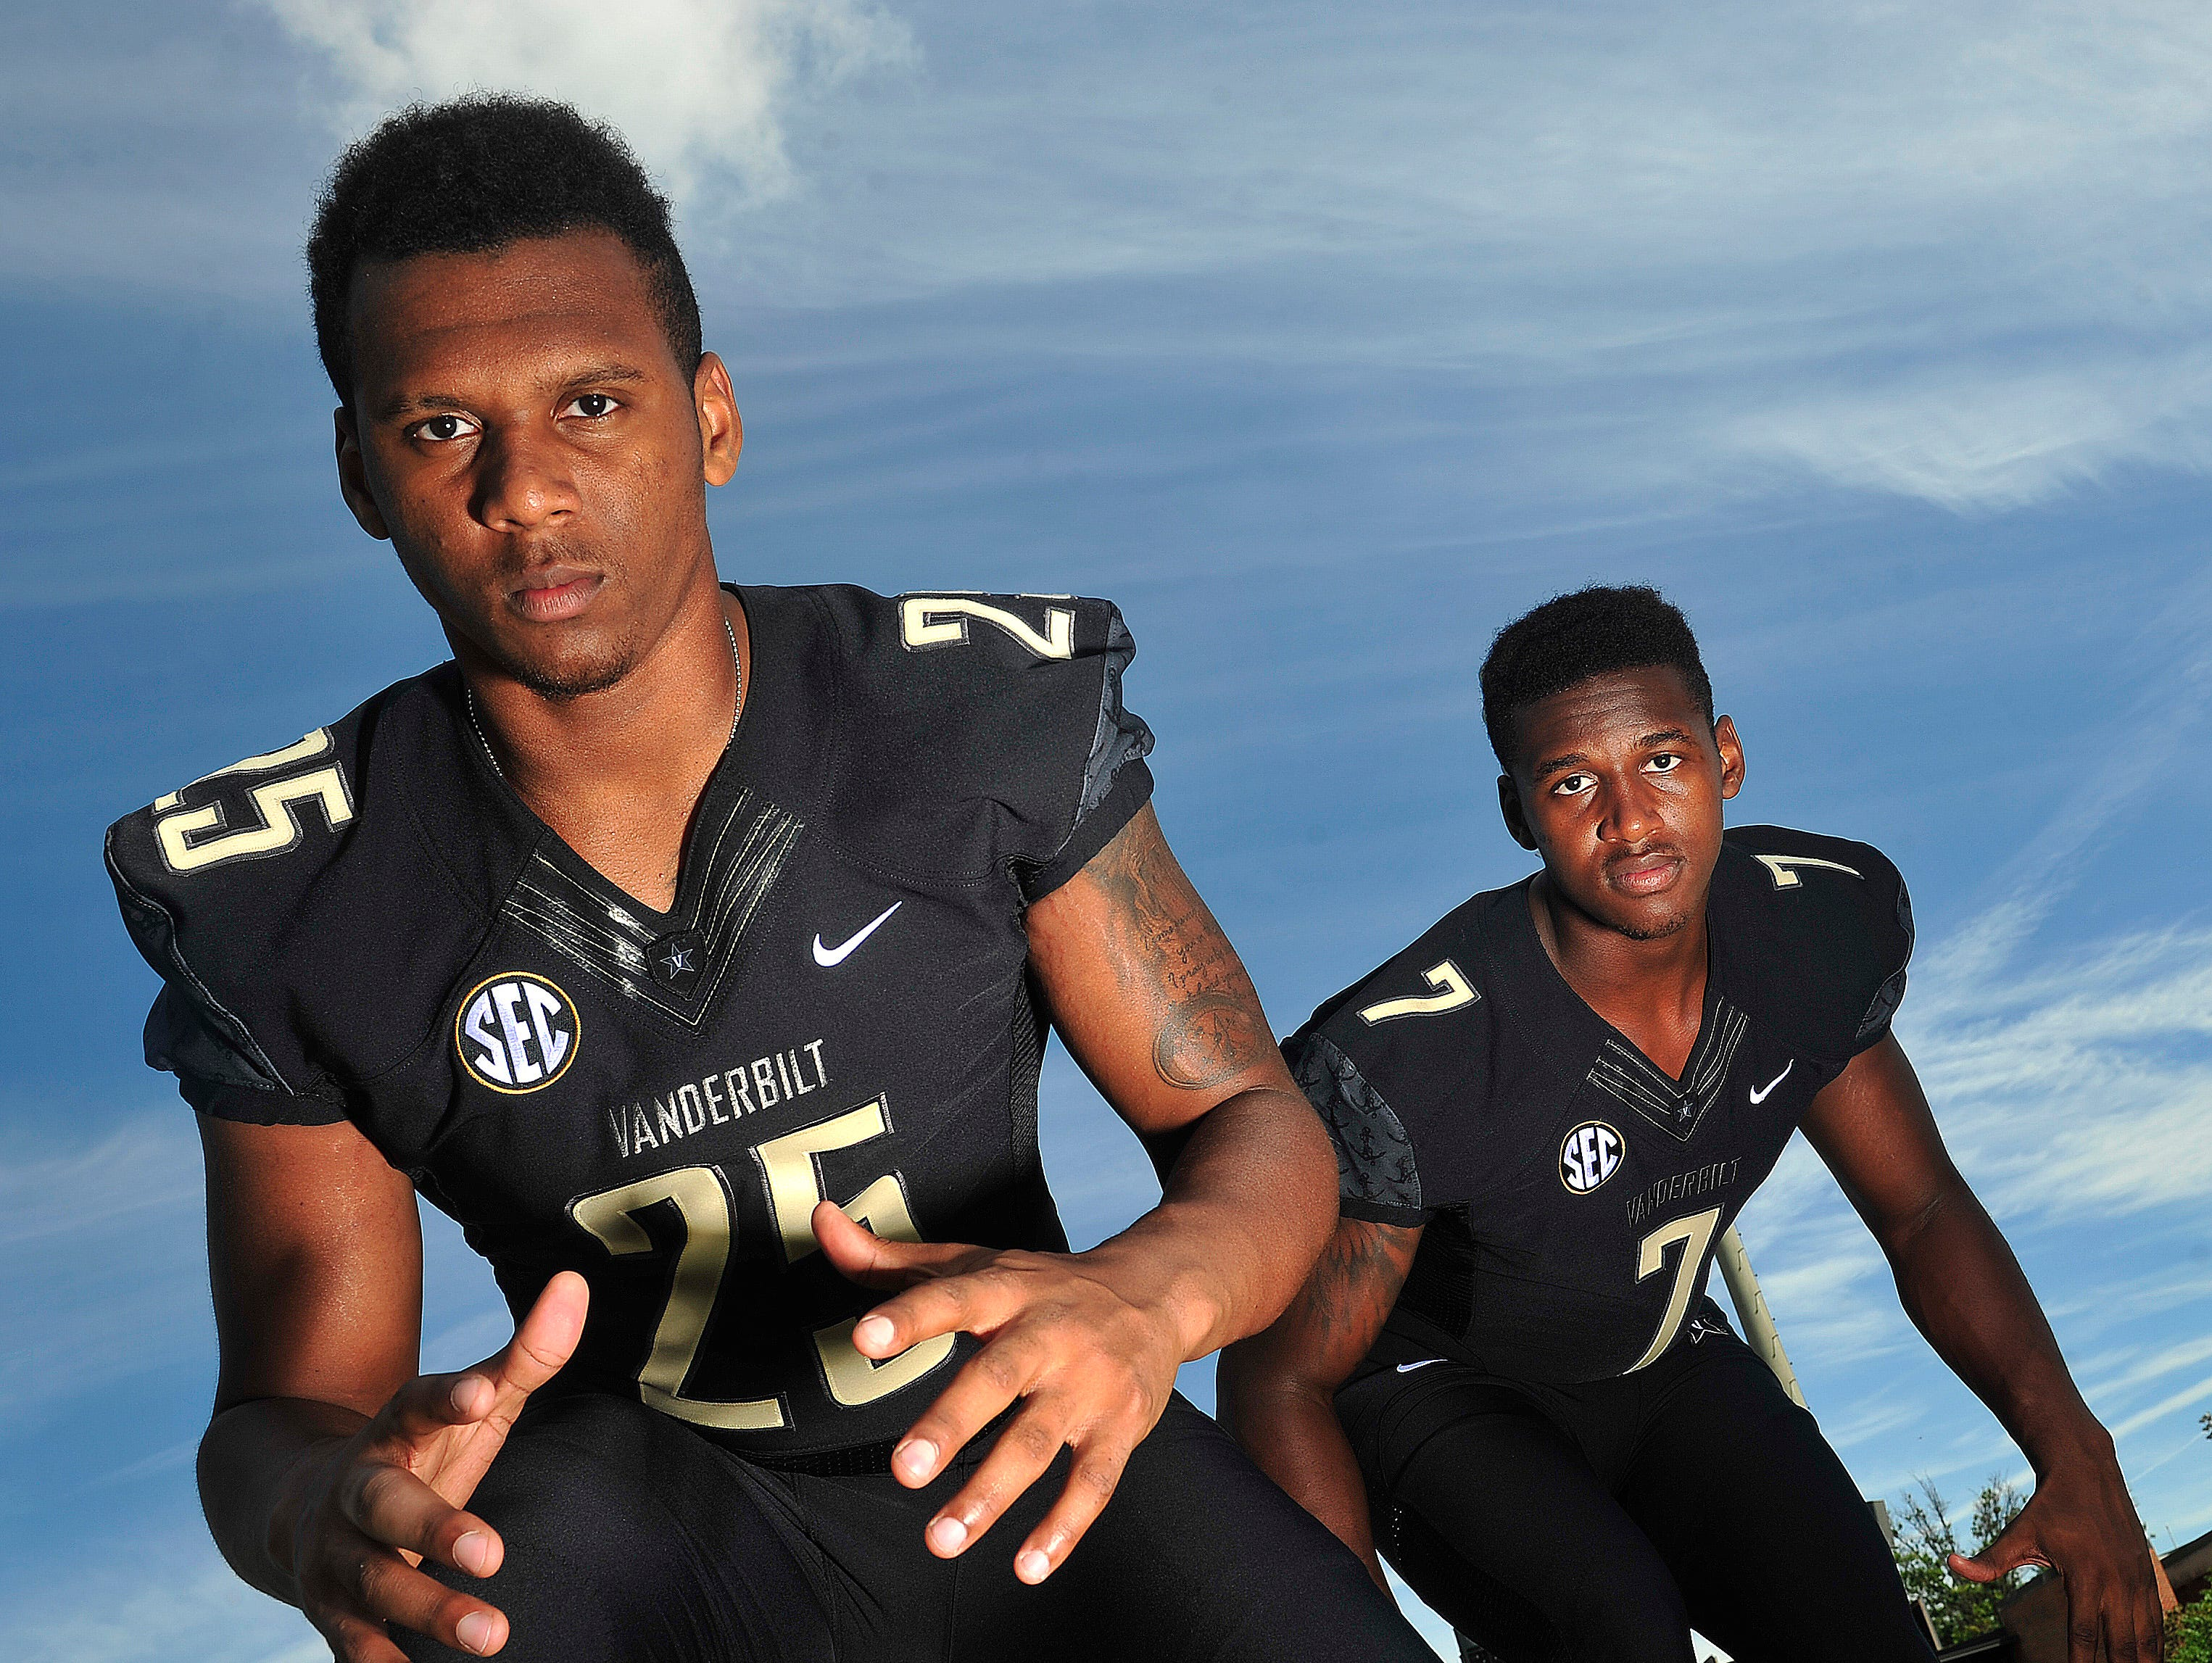 Brothers Josh Smith, left, and Emmanuel Smith pose for camera at the Vanderbilt University practice field and McGugin Center on campus Nashville, Tenn. August 21, 2015.